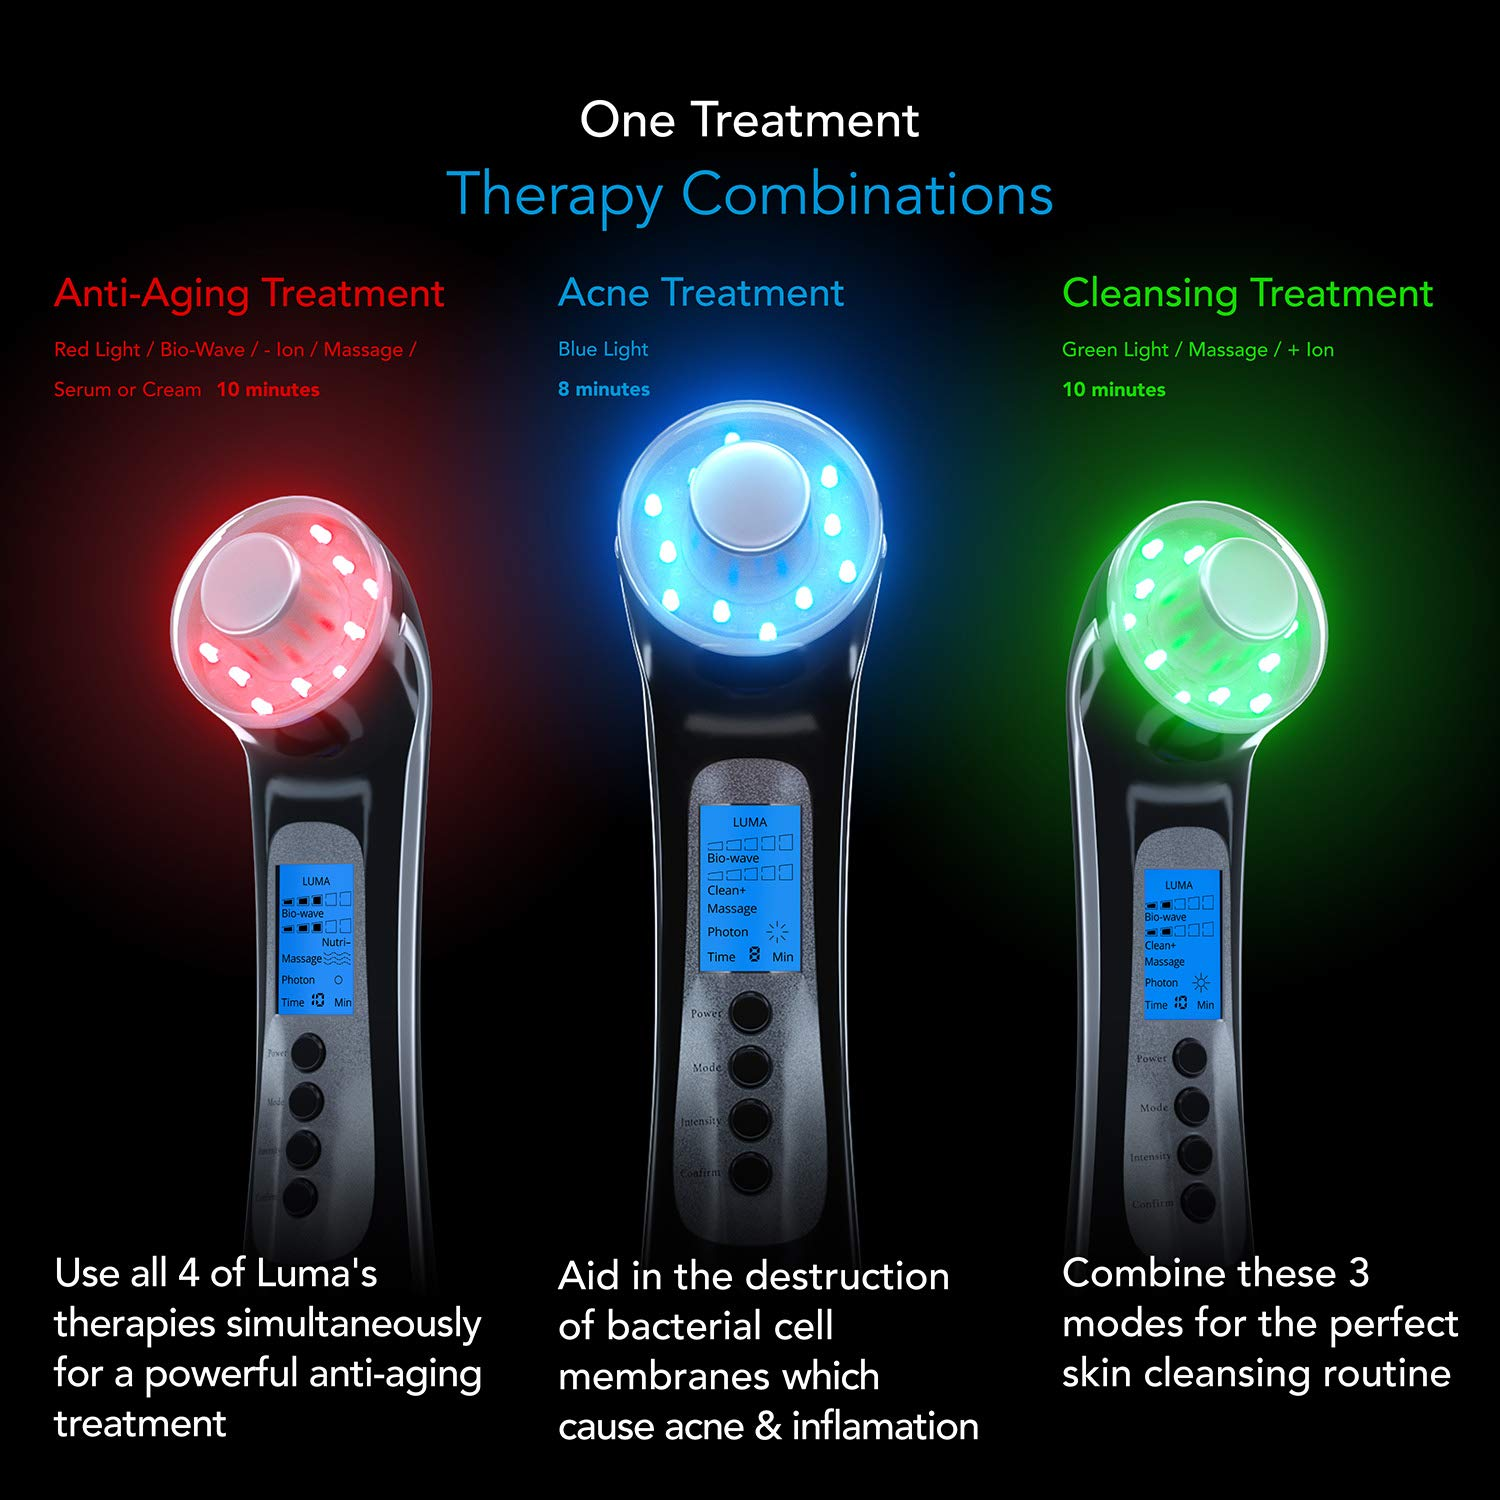 Luma Skin Therapy Wand - 4-in-1 Natural Facial Skincare Treatments - LED Light Machine+Ion Therapy+Wave Stimulation+Massage-Acne Treatment-Anti Aging-Lift & Firm-Red-Blue-Green-Tighten Skin-Wrinkles by Pure Daily Care (Image #4)